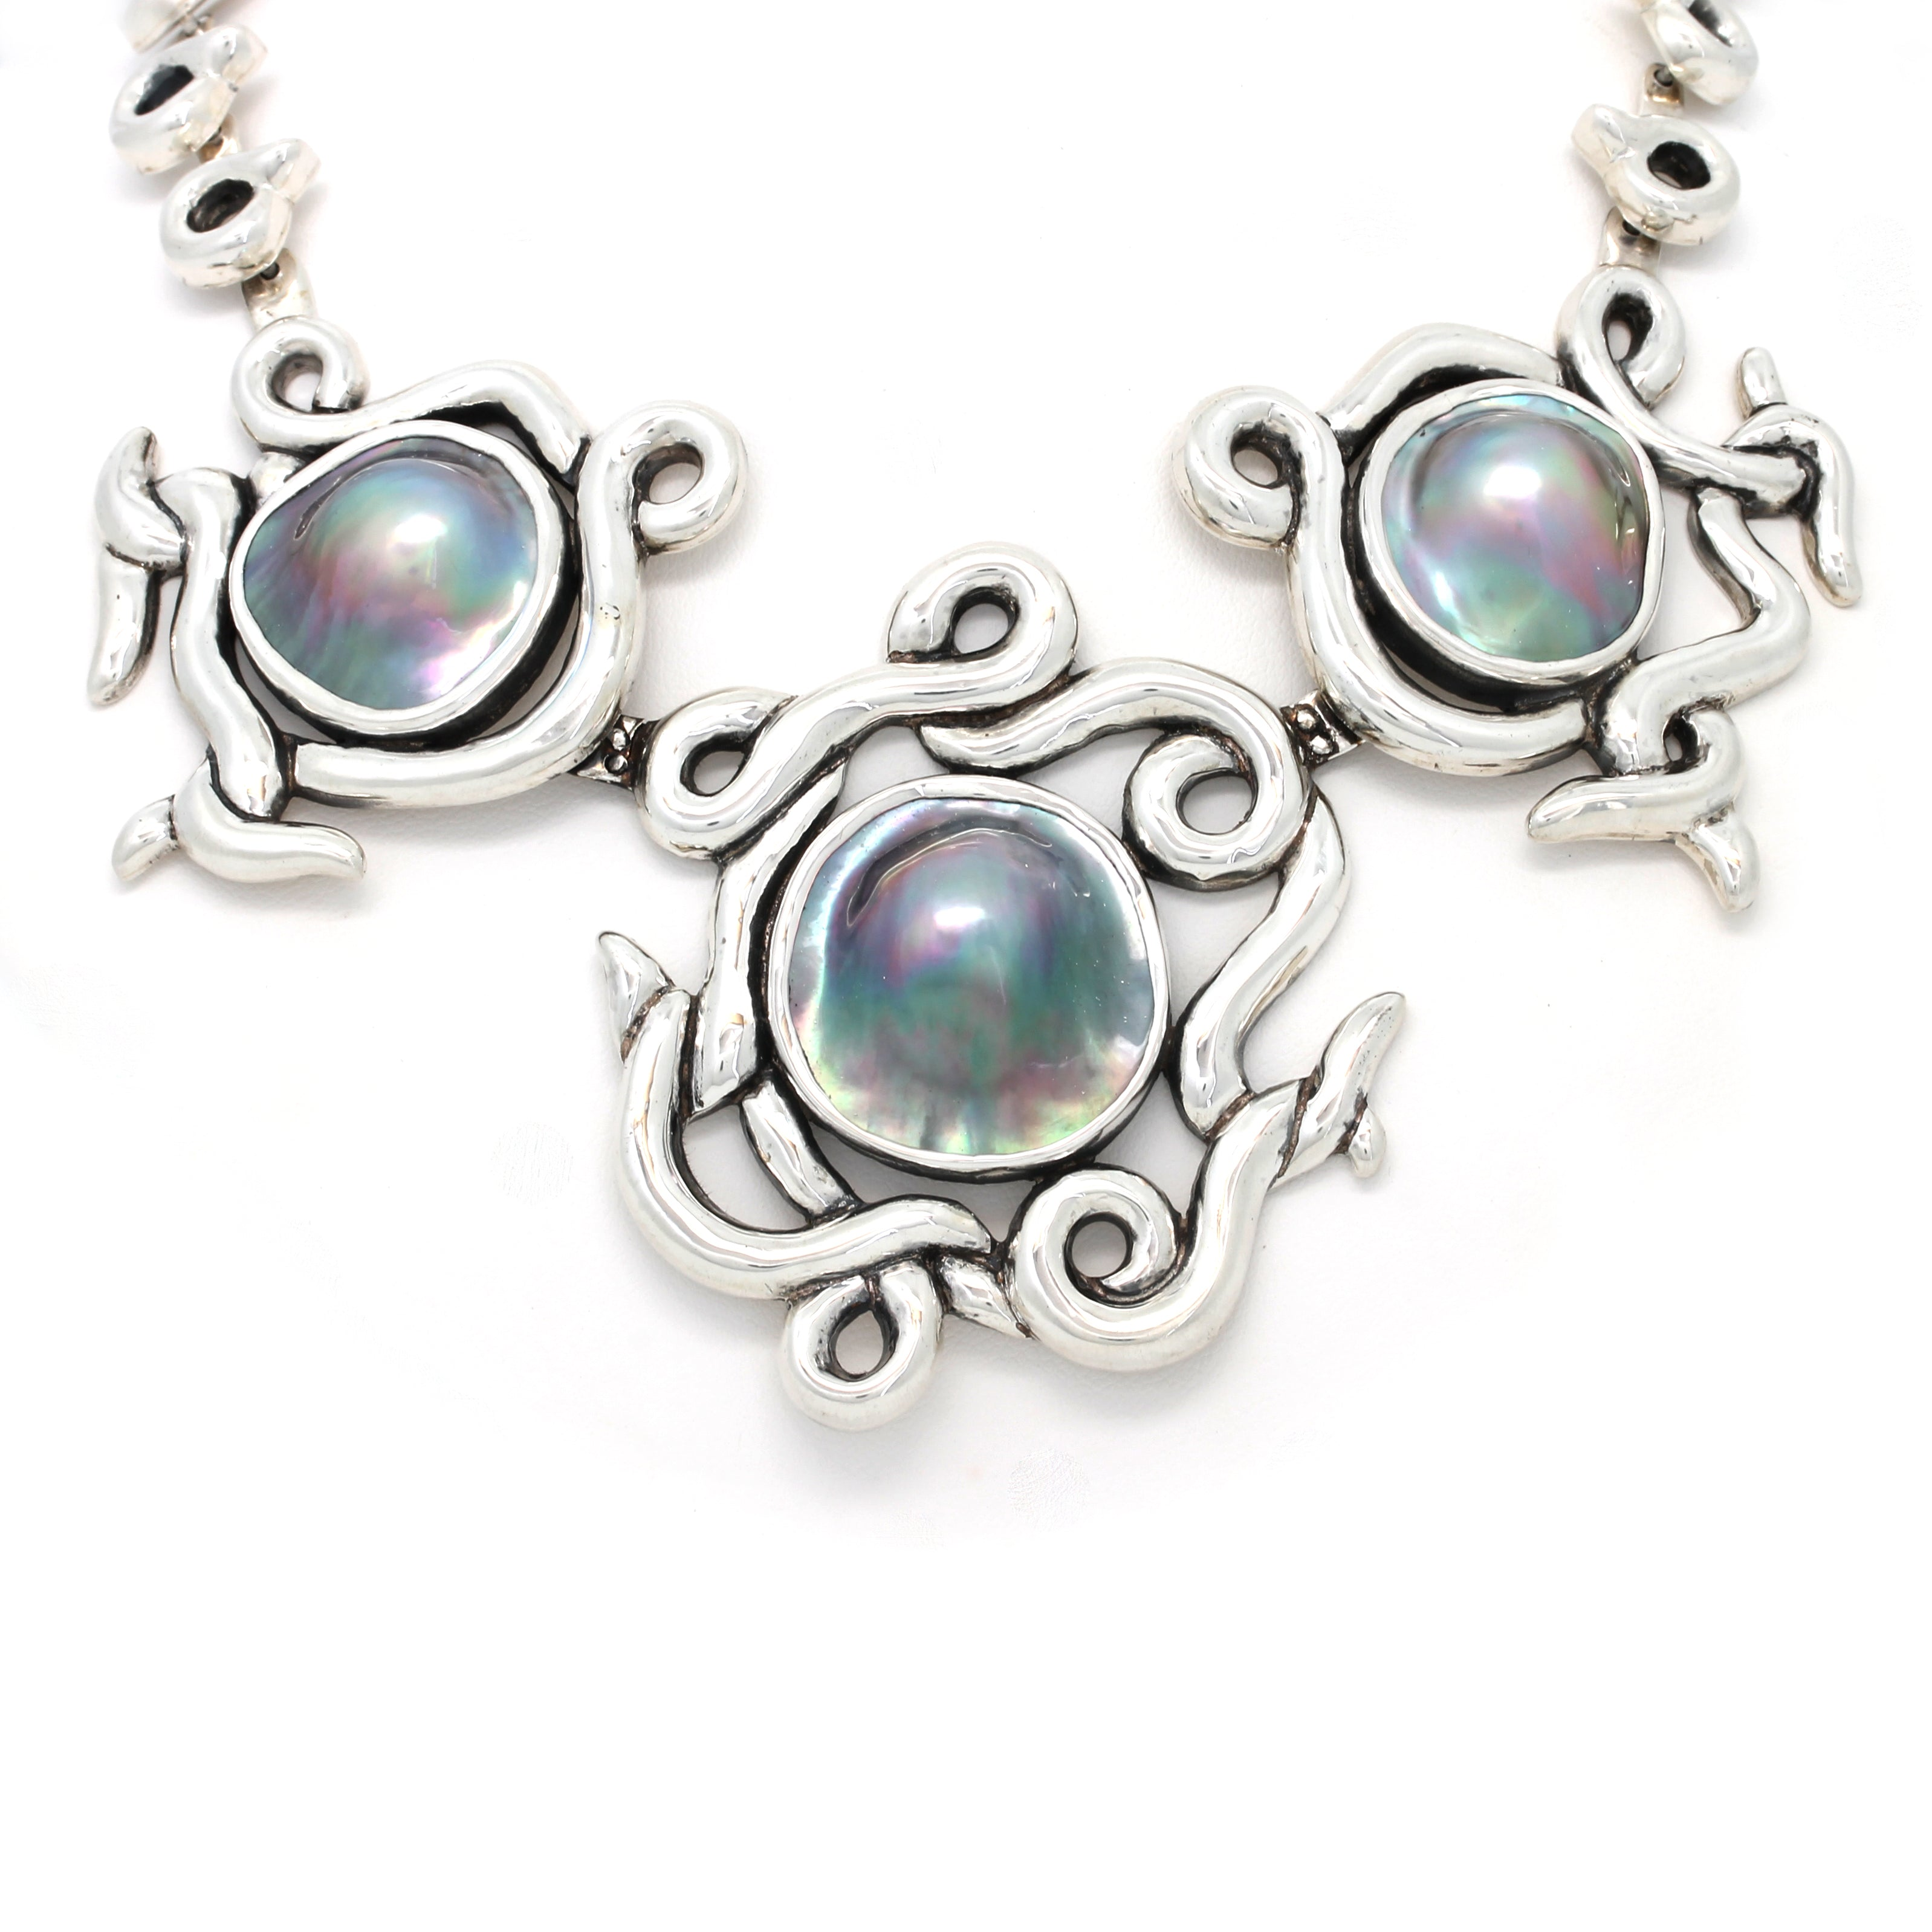 Stunning Blister Mabe Pearl Silver Necklace by  Priscila Canales